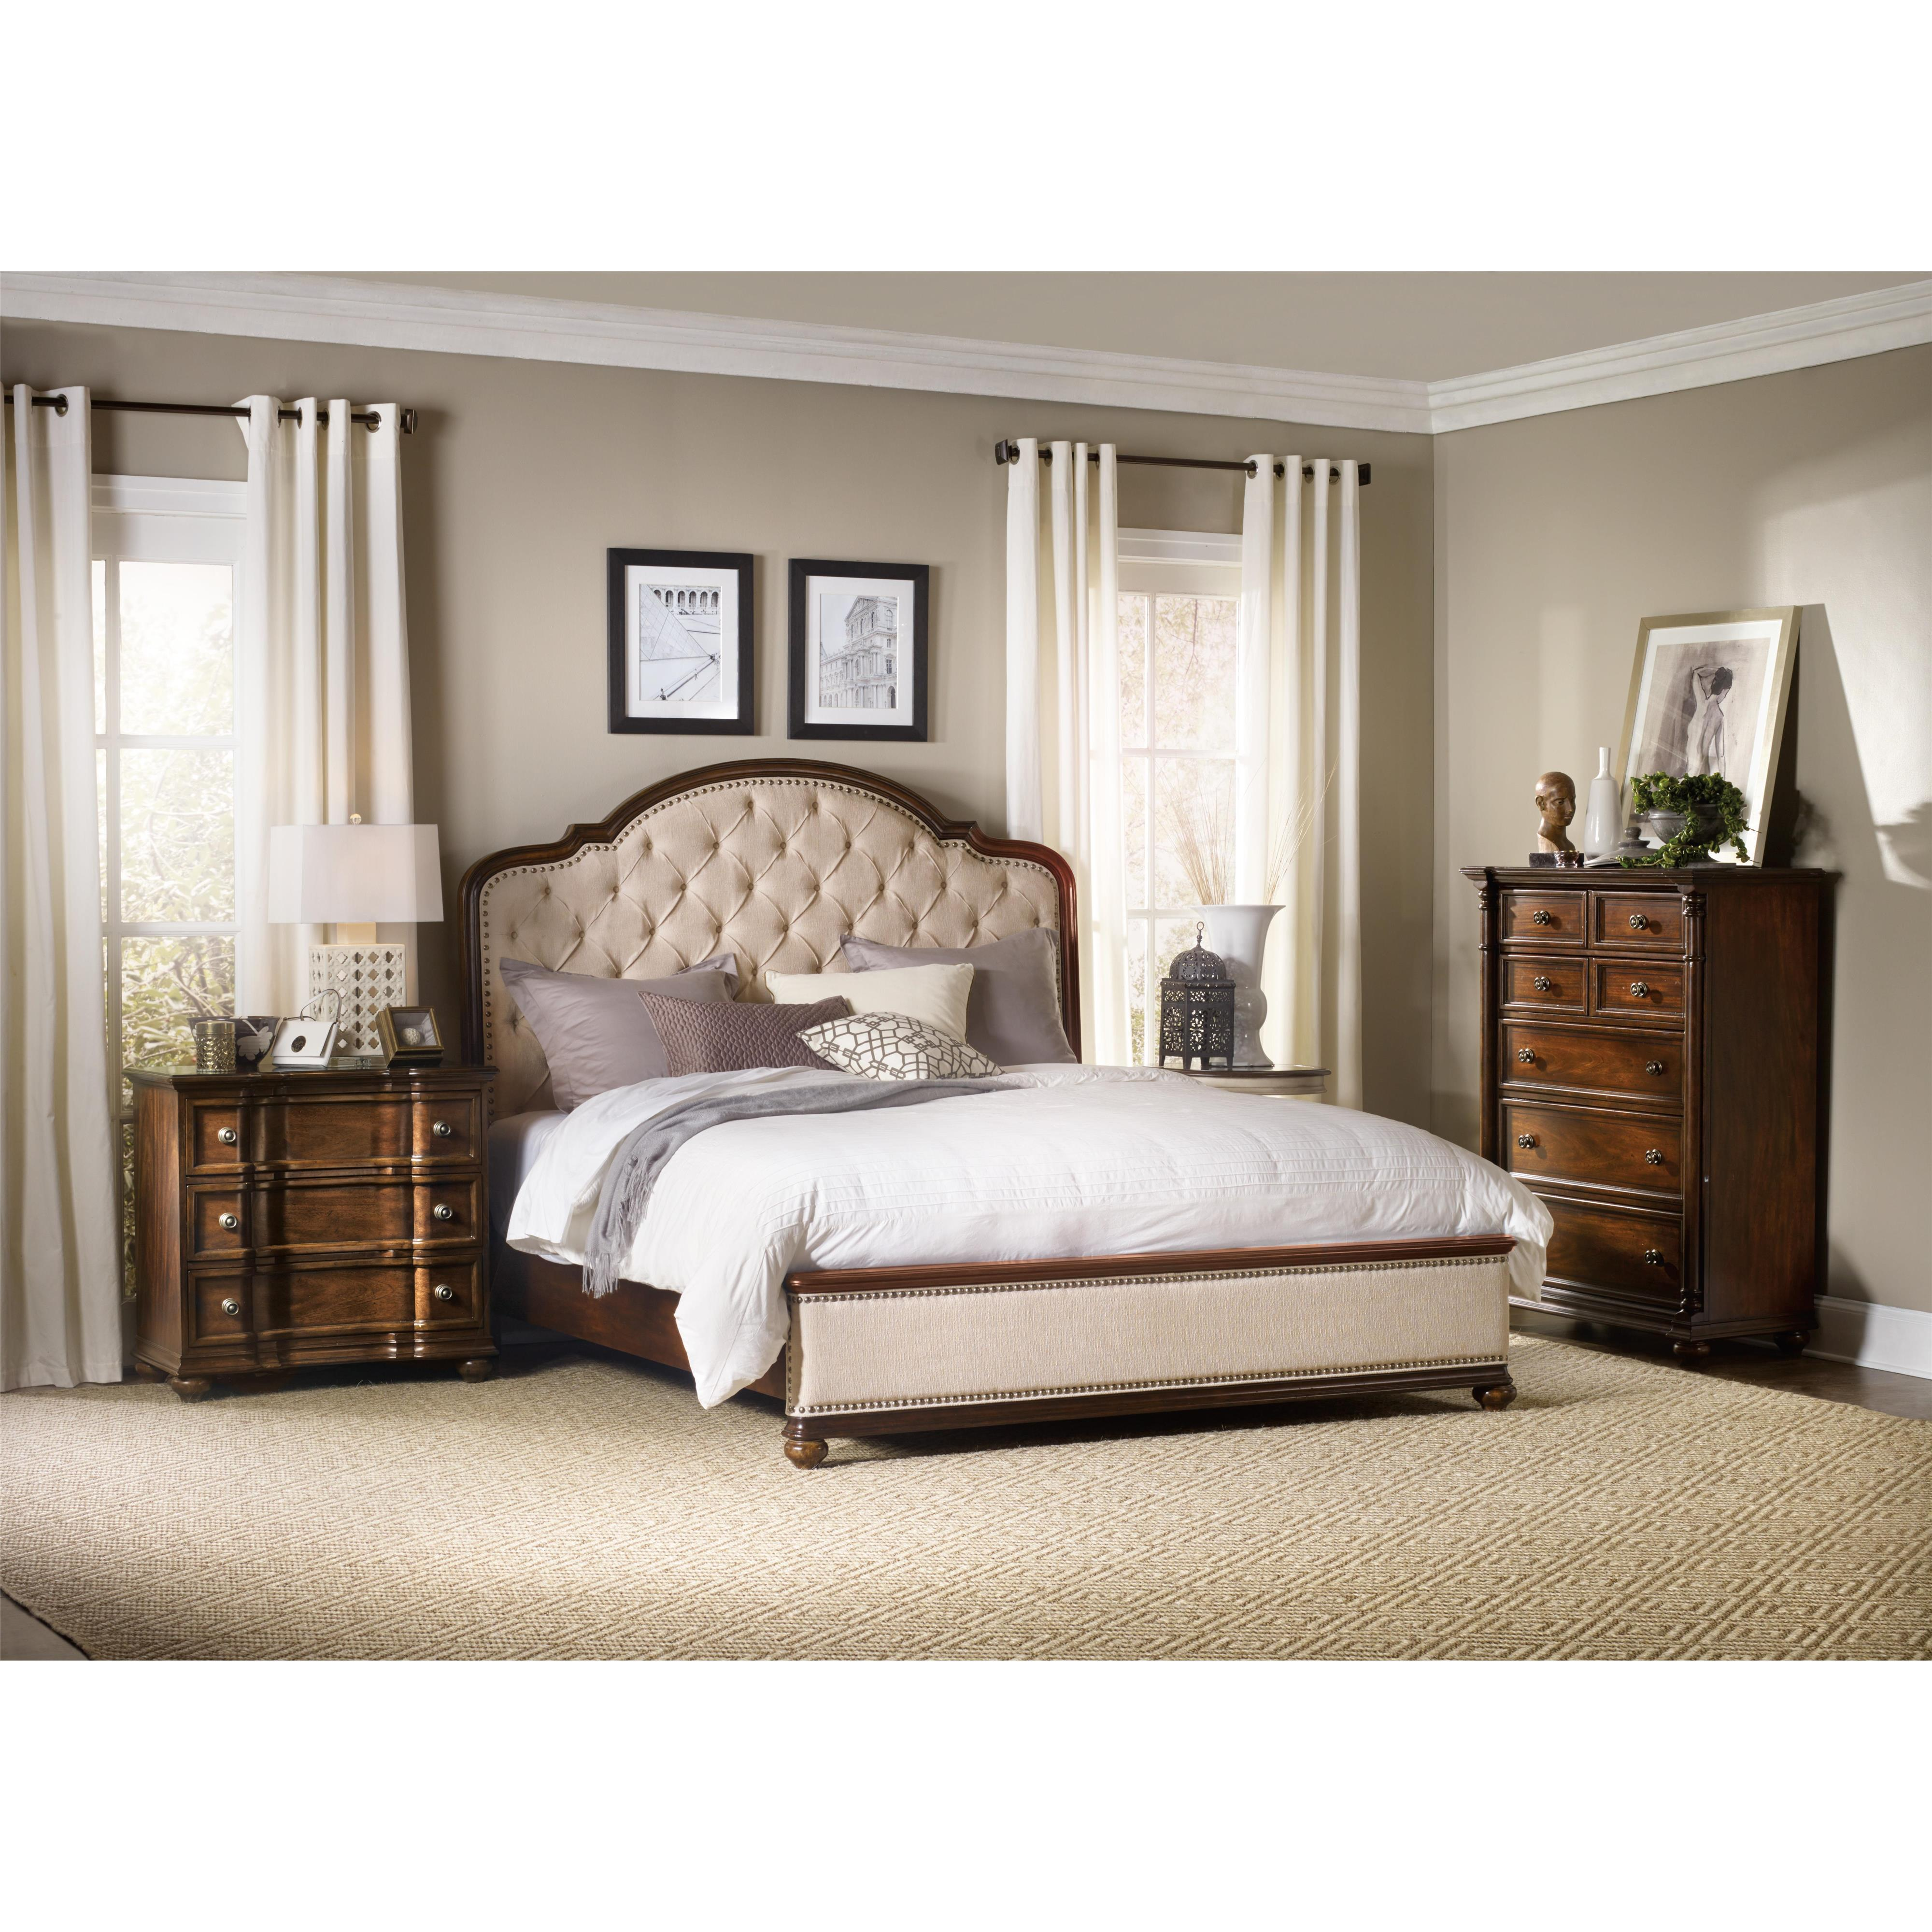 Hooker Furniture Leesburg California King Bedroom Group - Item Number: 5381 CK Bedroom Group 3